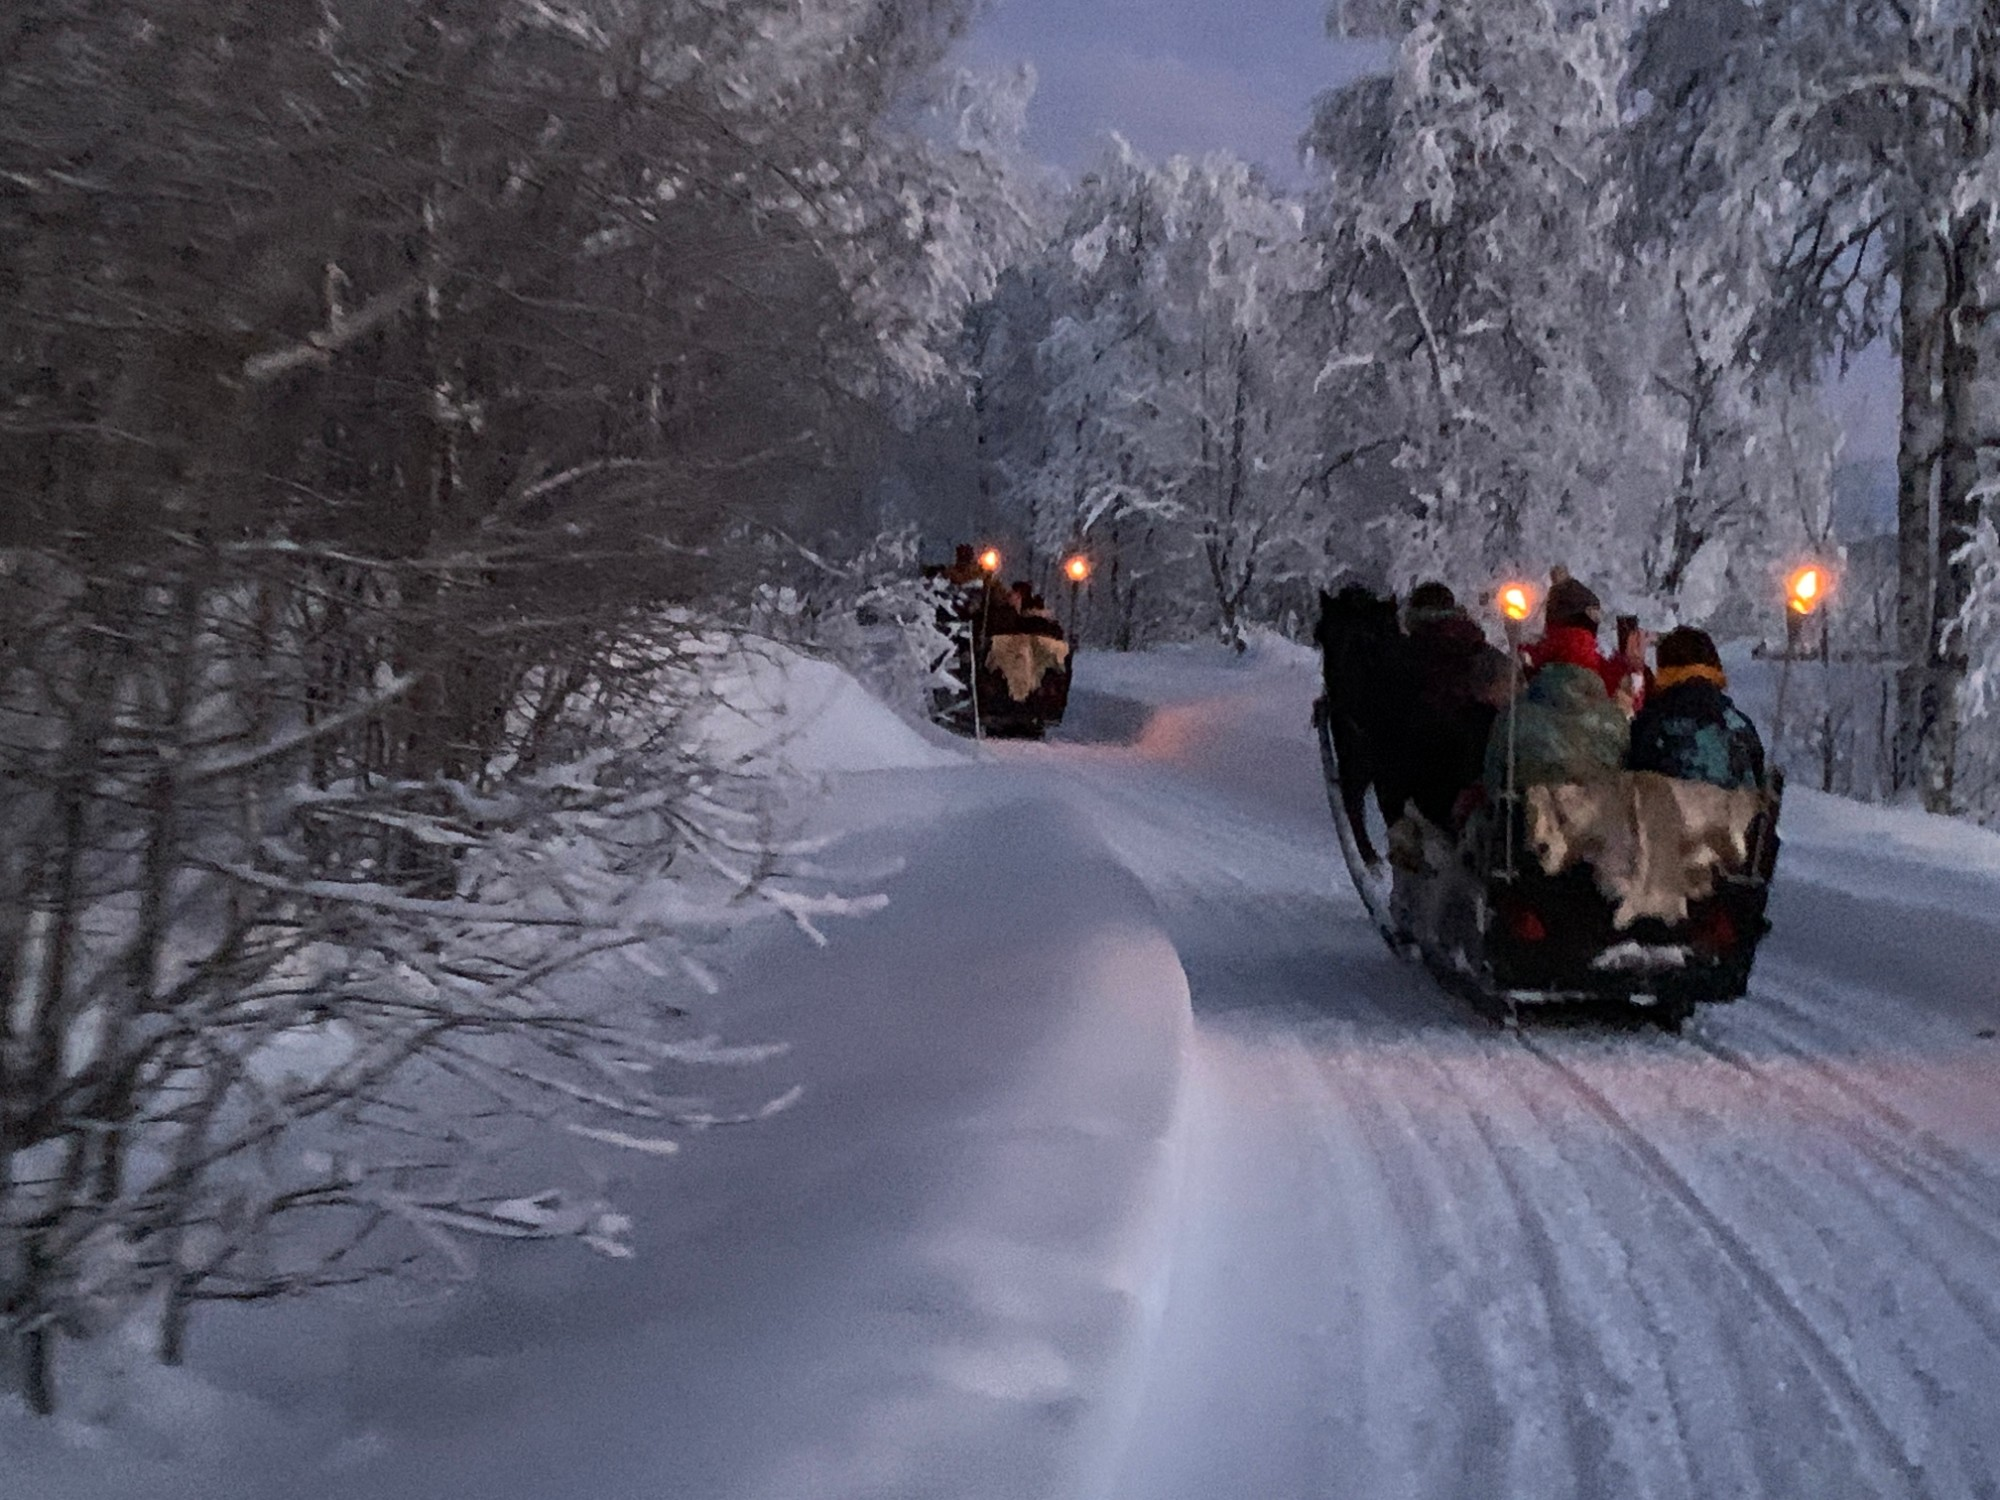 Sleigh ride in winterwonderland